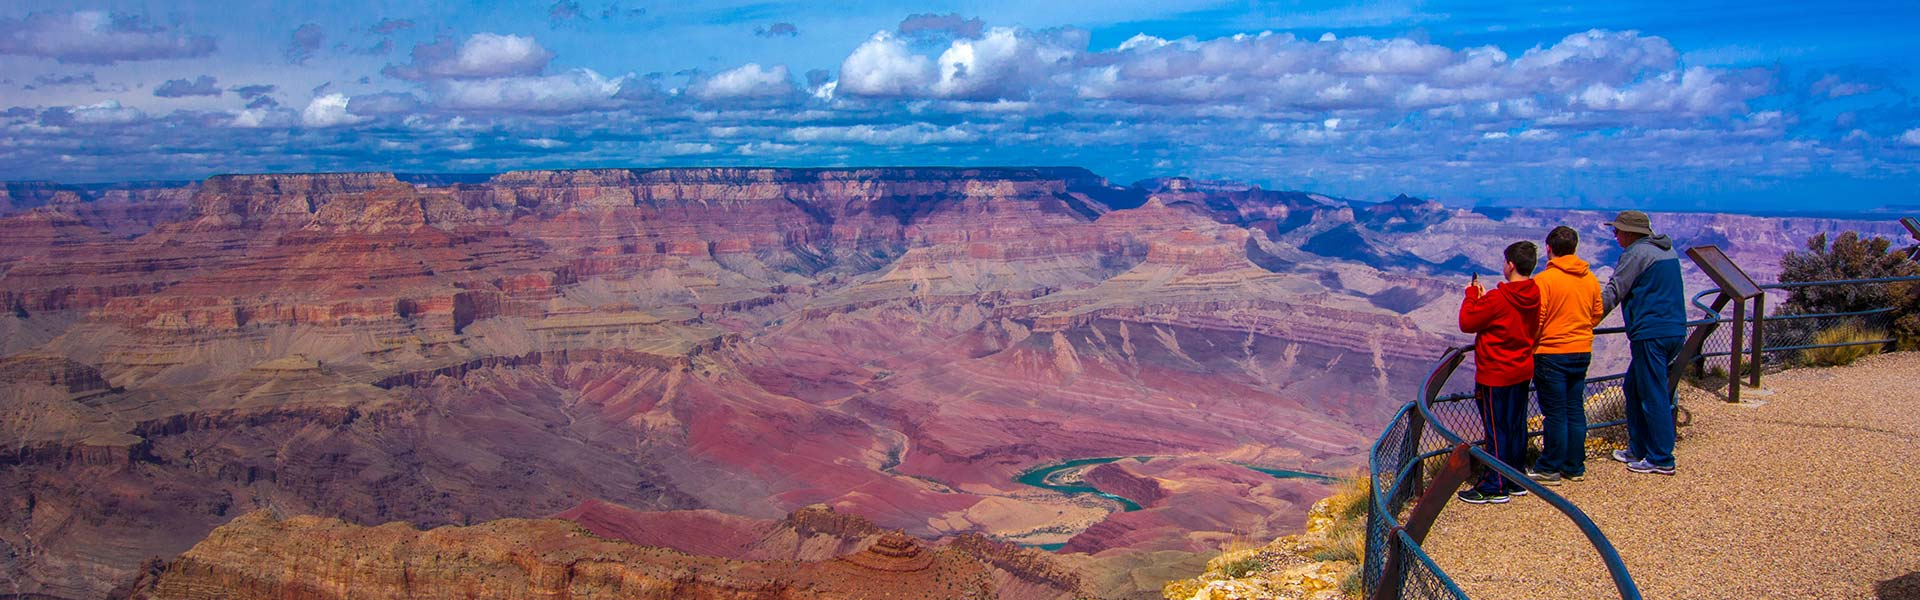 Grand Canyon Van Tours